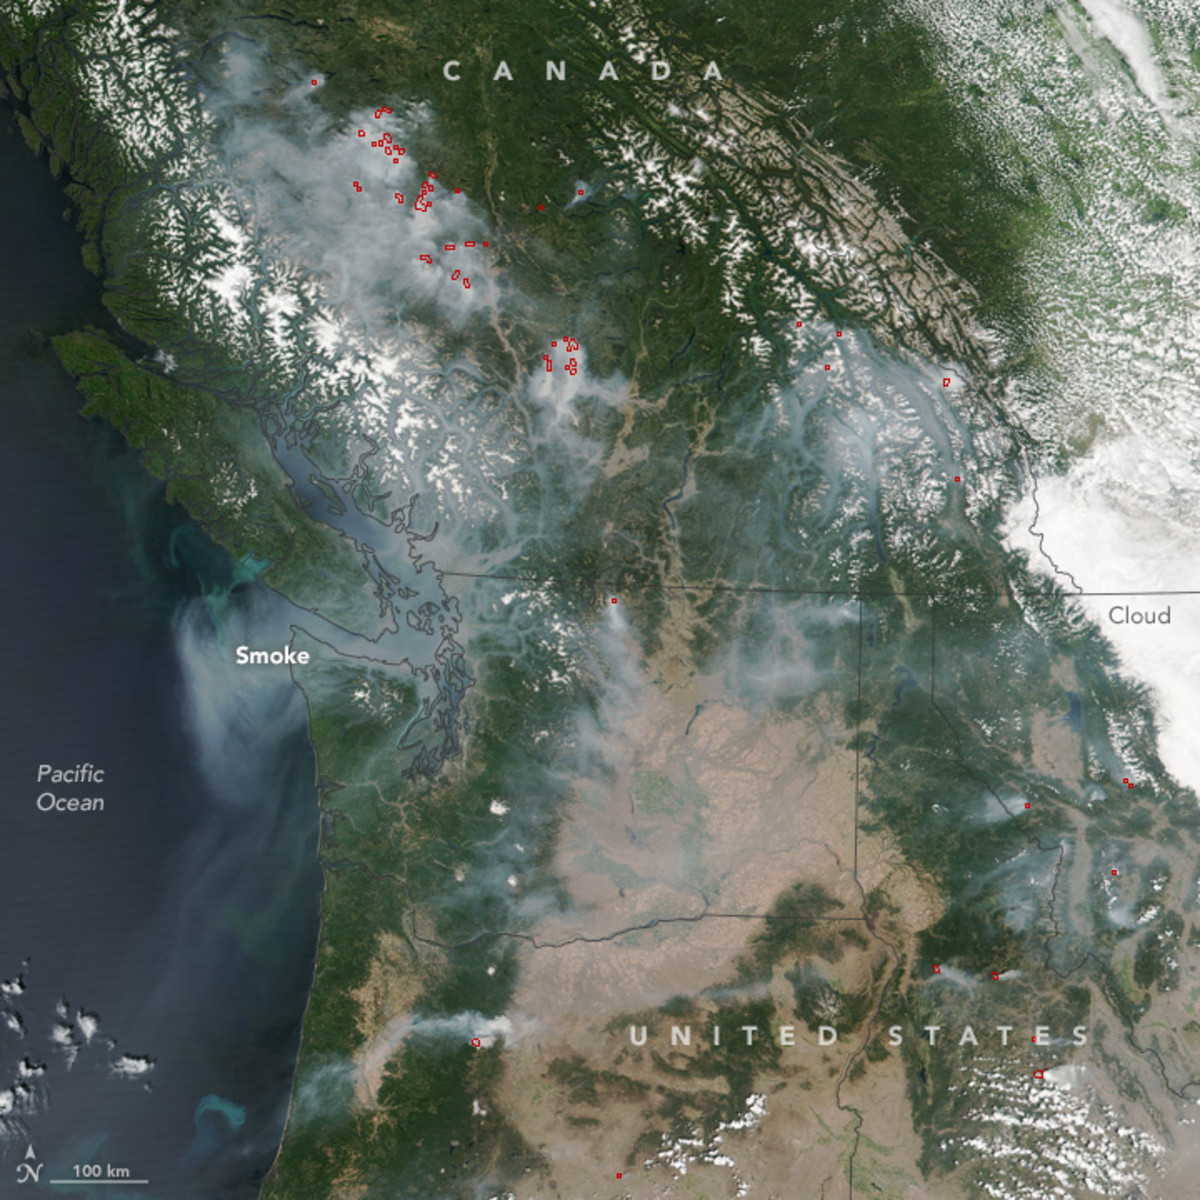 Wildfires, indicated here by red marks, dot the Pacific Northwest.